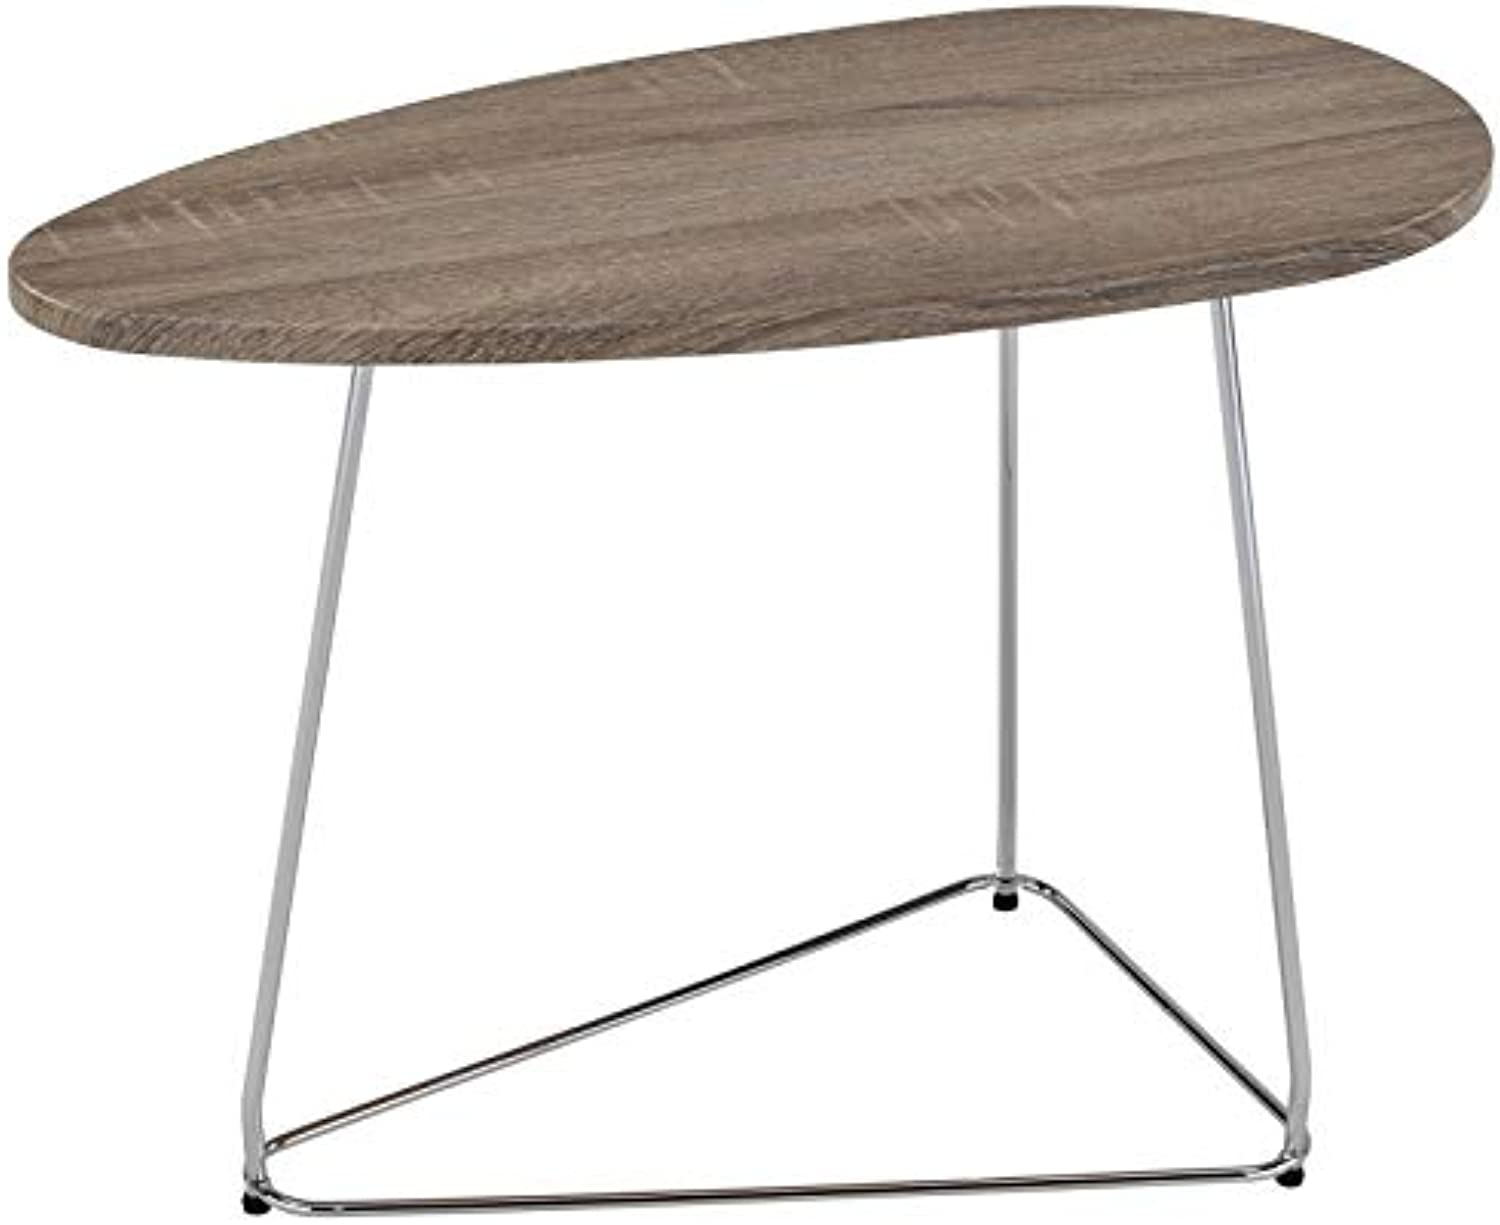 Jama Contemporary Wood & Metal Accent Table in Driftwood